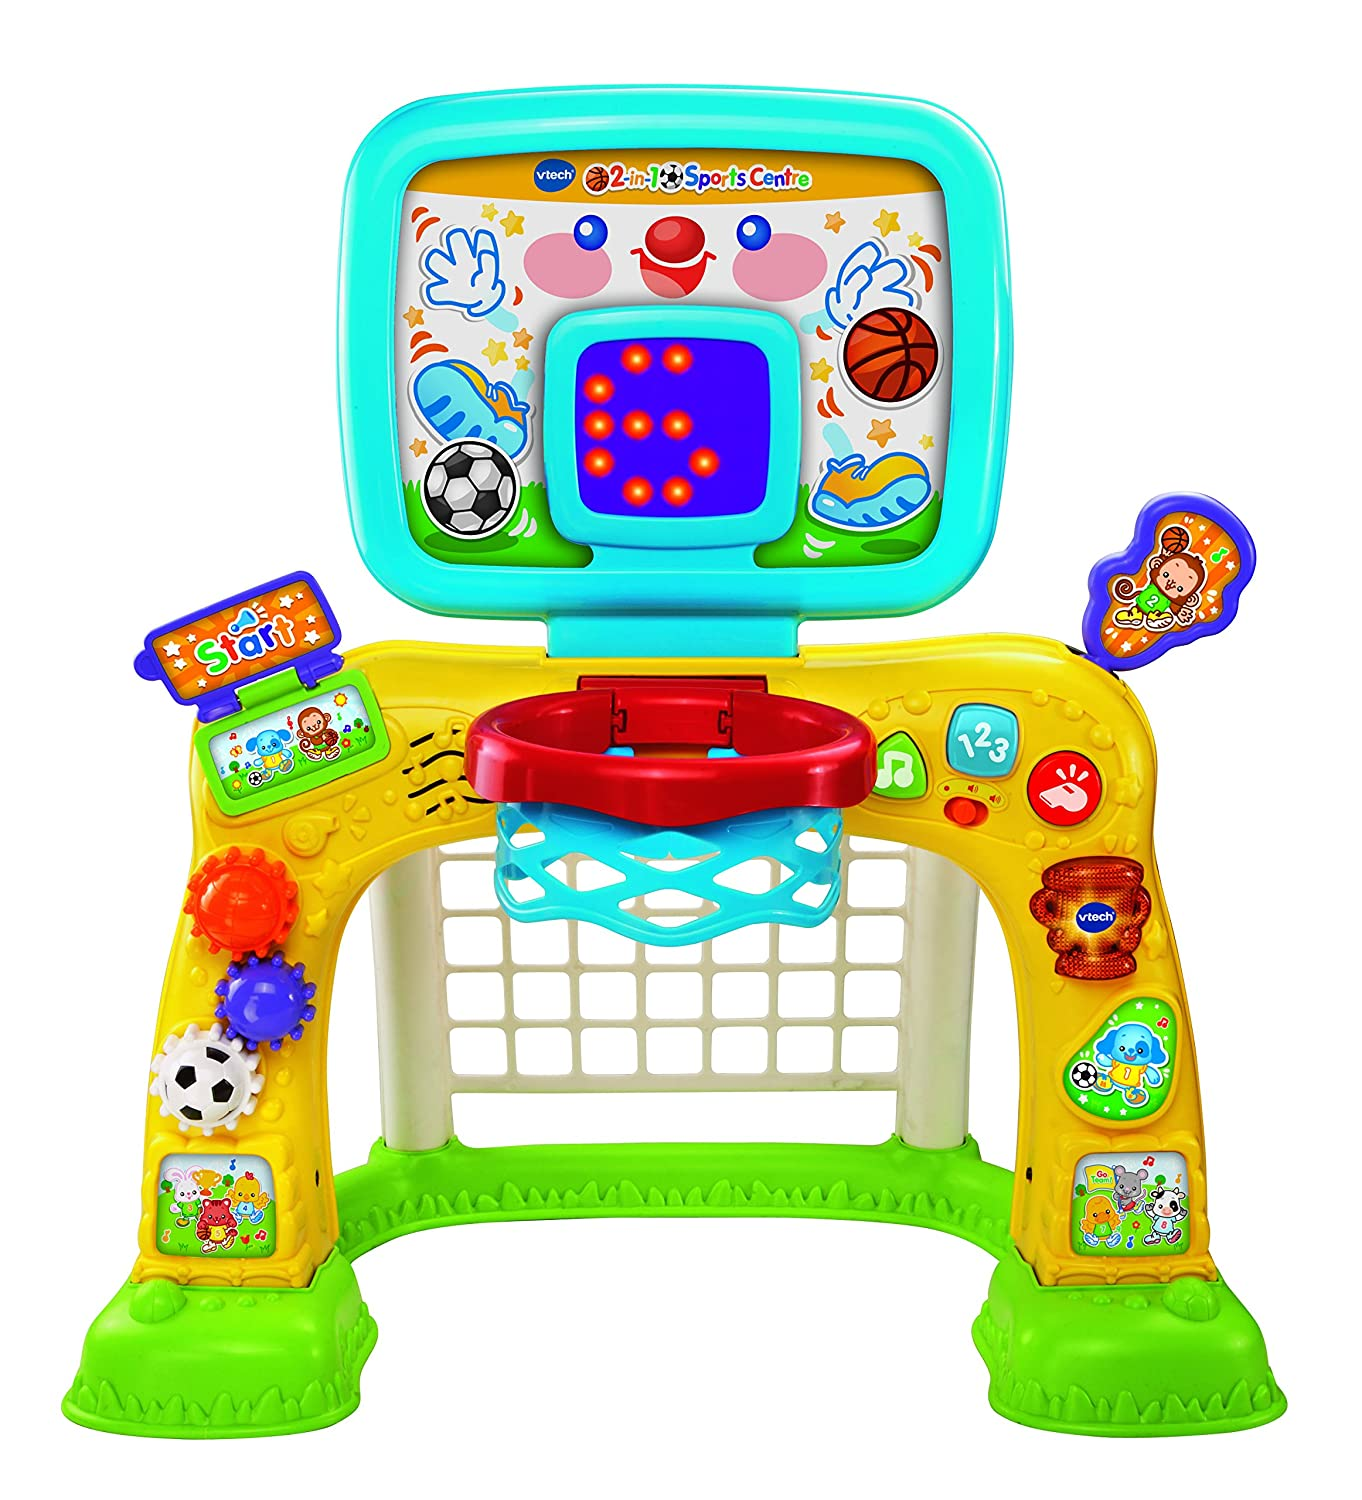 2-in-1 Sports Centre Toys R Us Vtech Electronics 156303